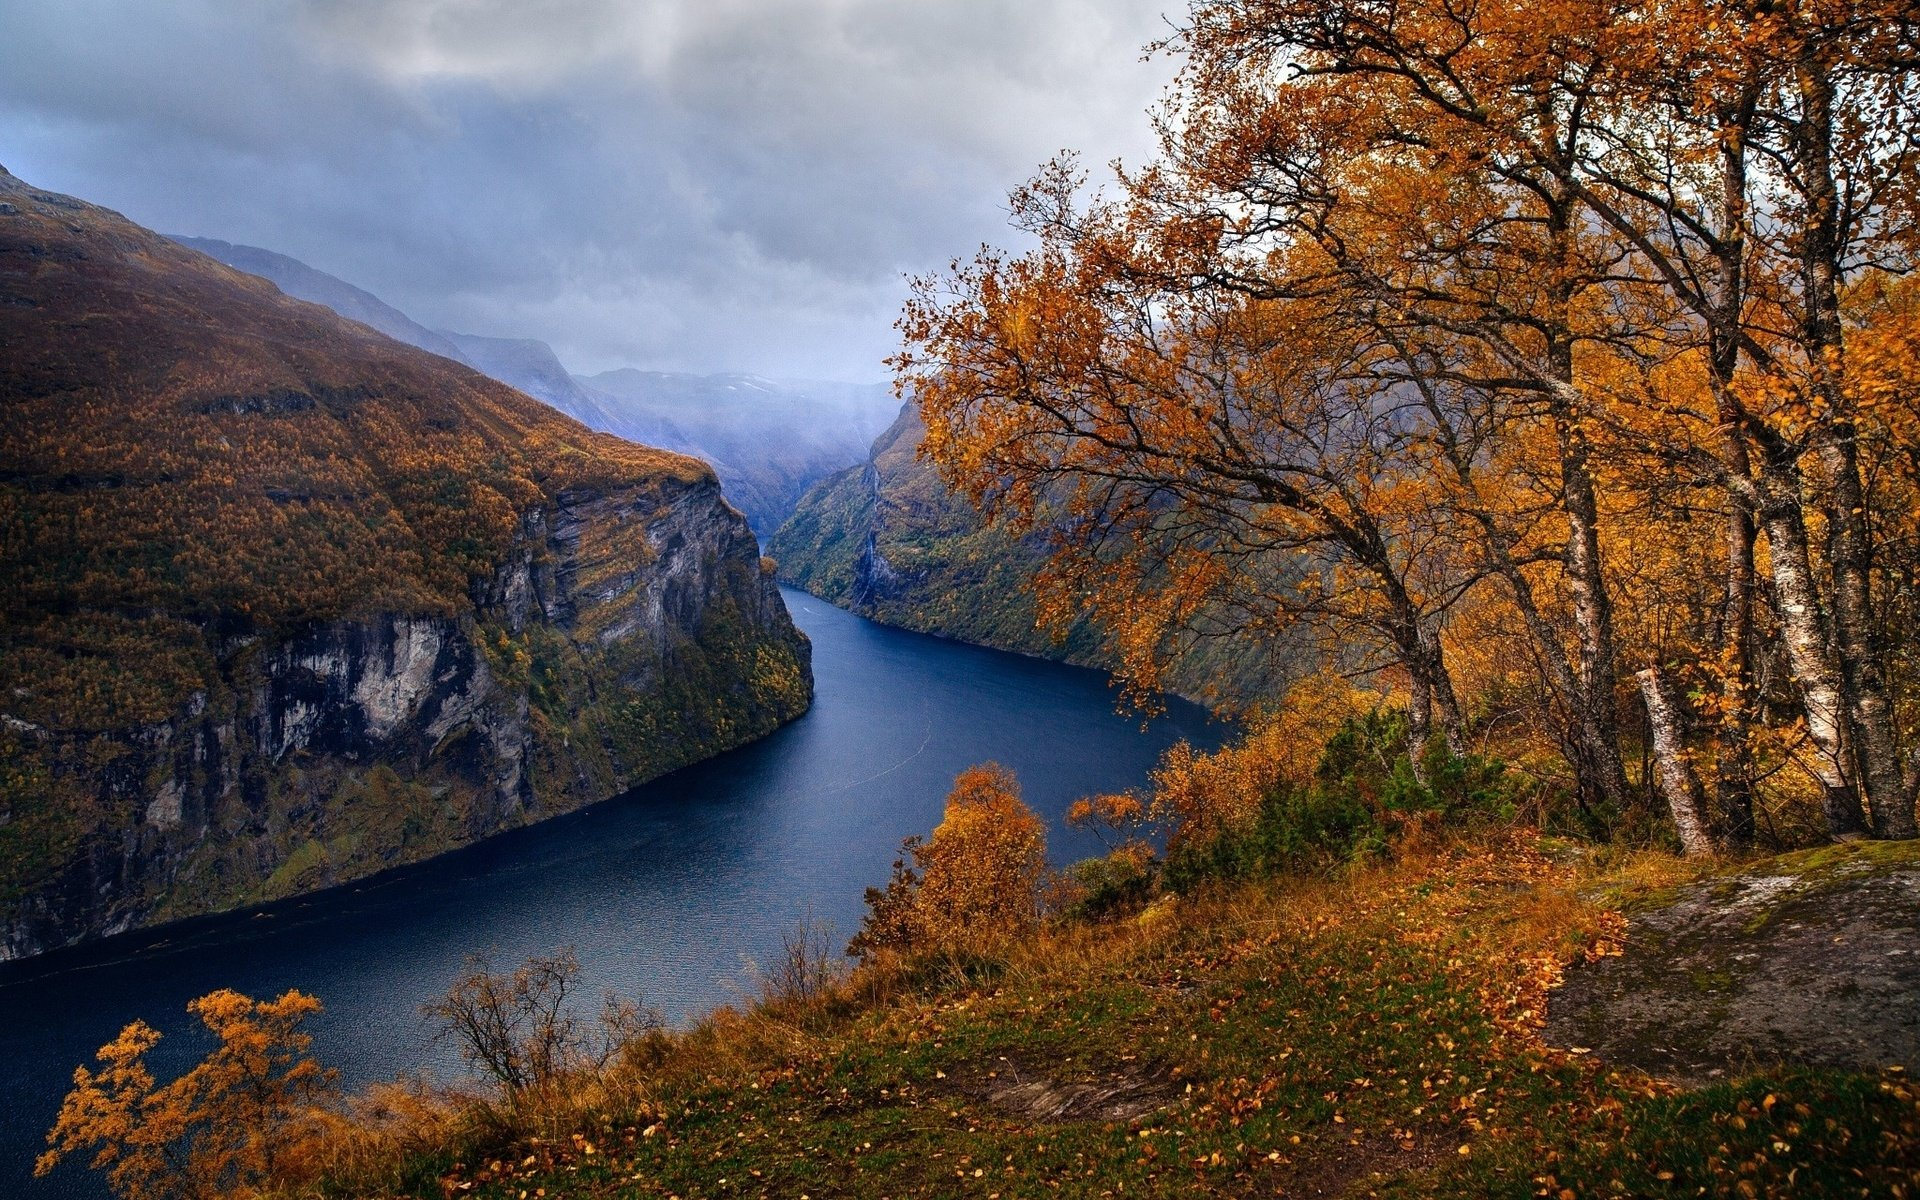 Iphone 6 Wallpaper Fall Leaves Autumn Trees Along The Fjord Hd Wallpaper Background